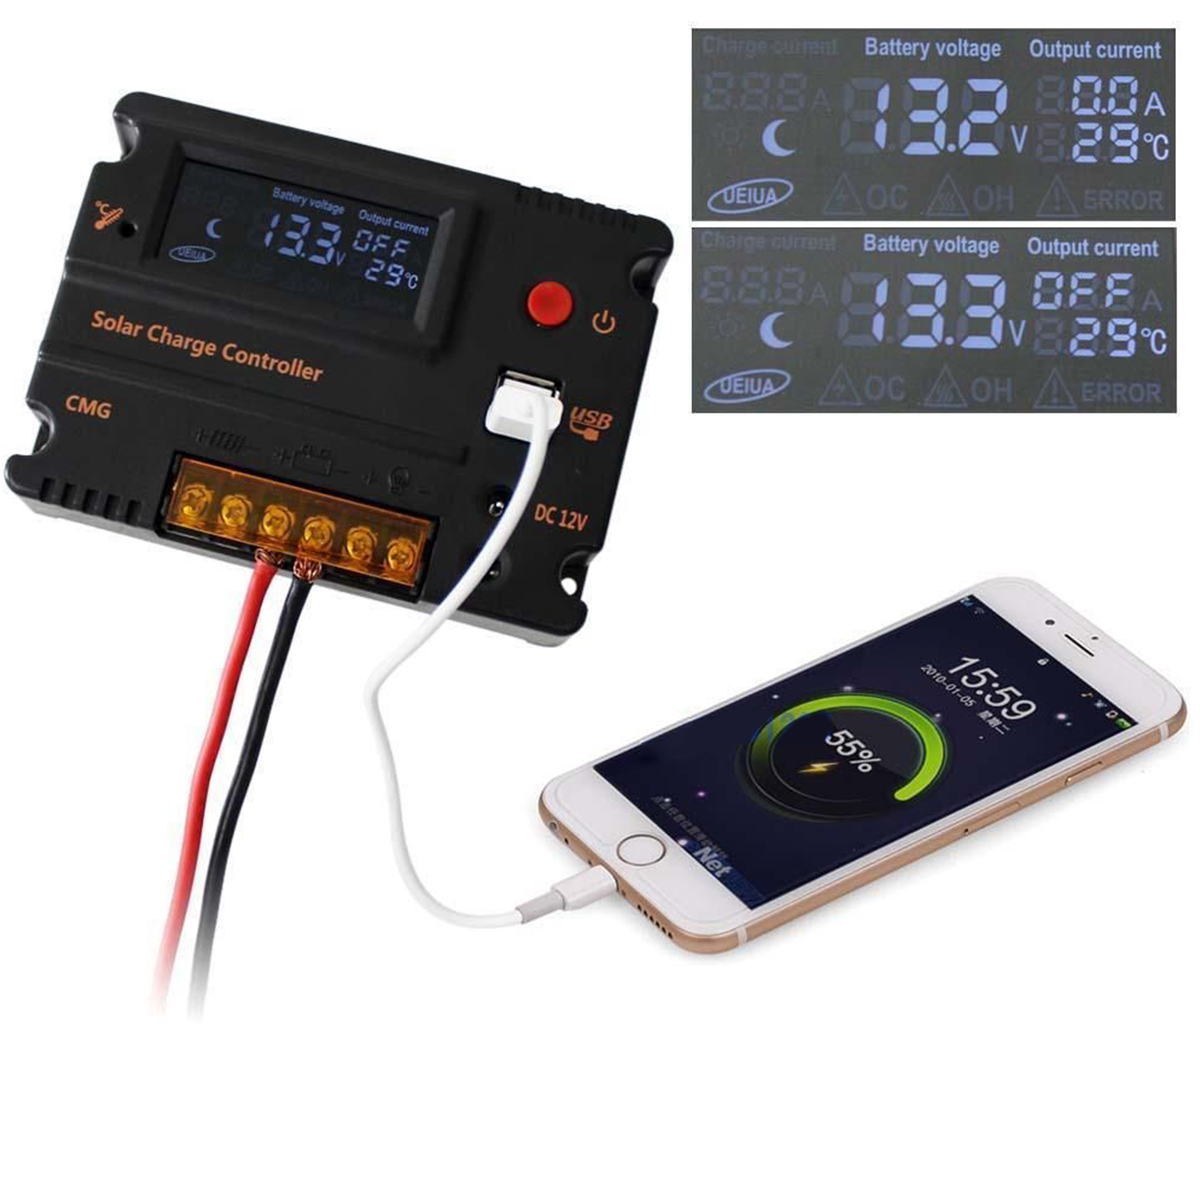 LCD Solar Panel Battery Regulator Charge Controller 12V/24V PWM Dual USB 5V DC 12V output for solar home system LD476(China (Mainland))